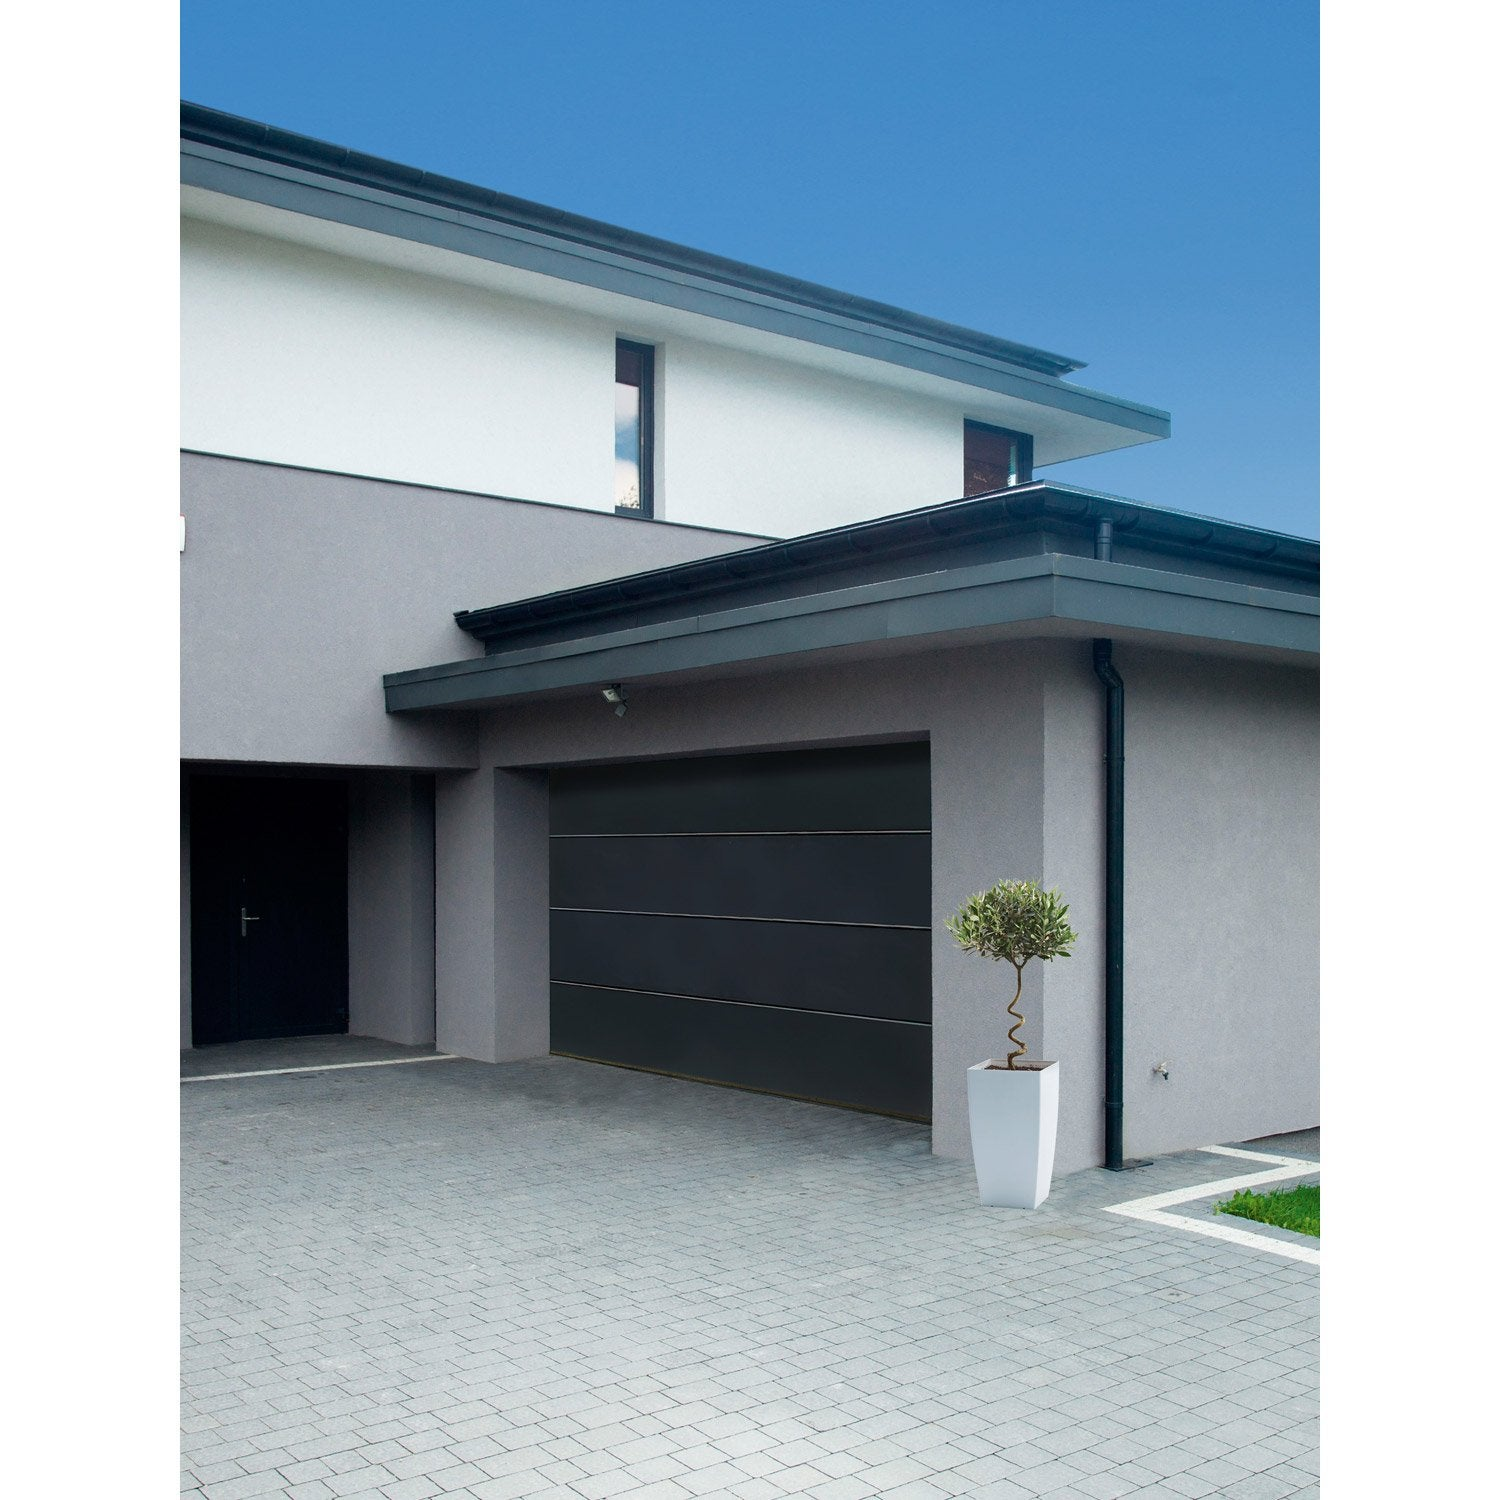 Porte de garage sectionnelle motoris e artens premium 200x240cm avec portillon leroy merlin - Largeur porte garage ...